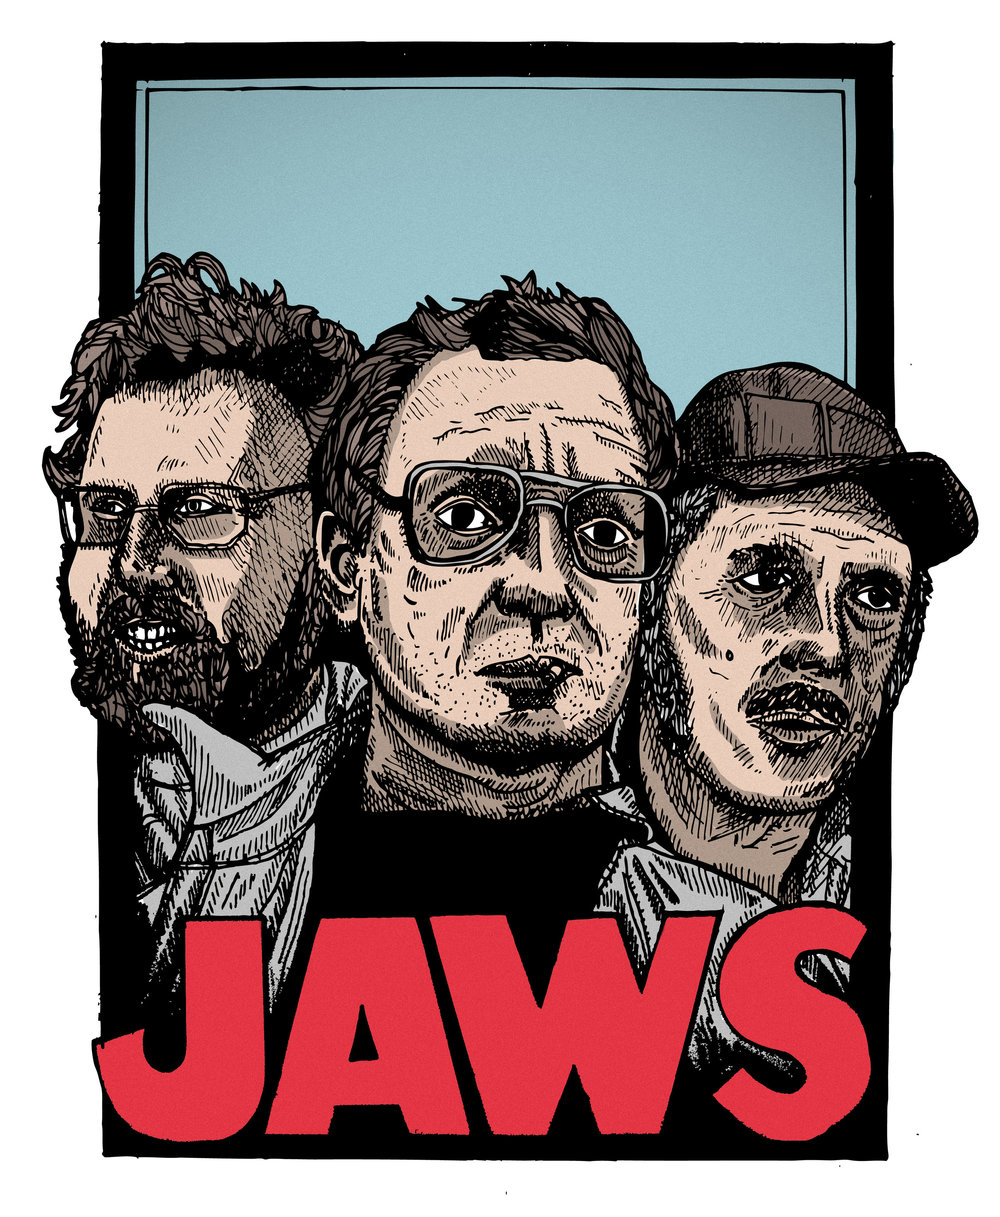 jaws+poster+colour+2+crop.jpg